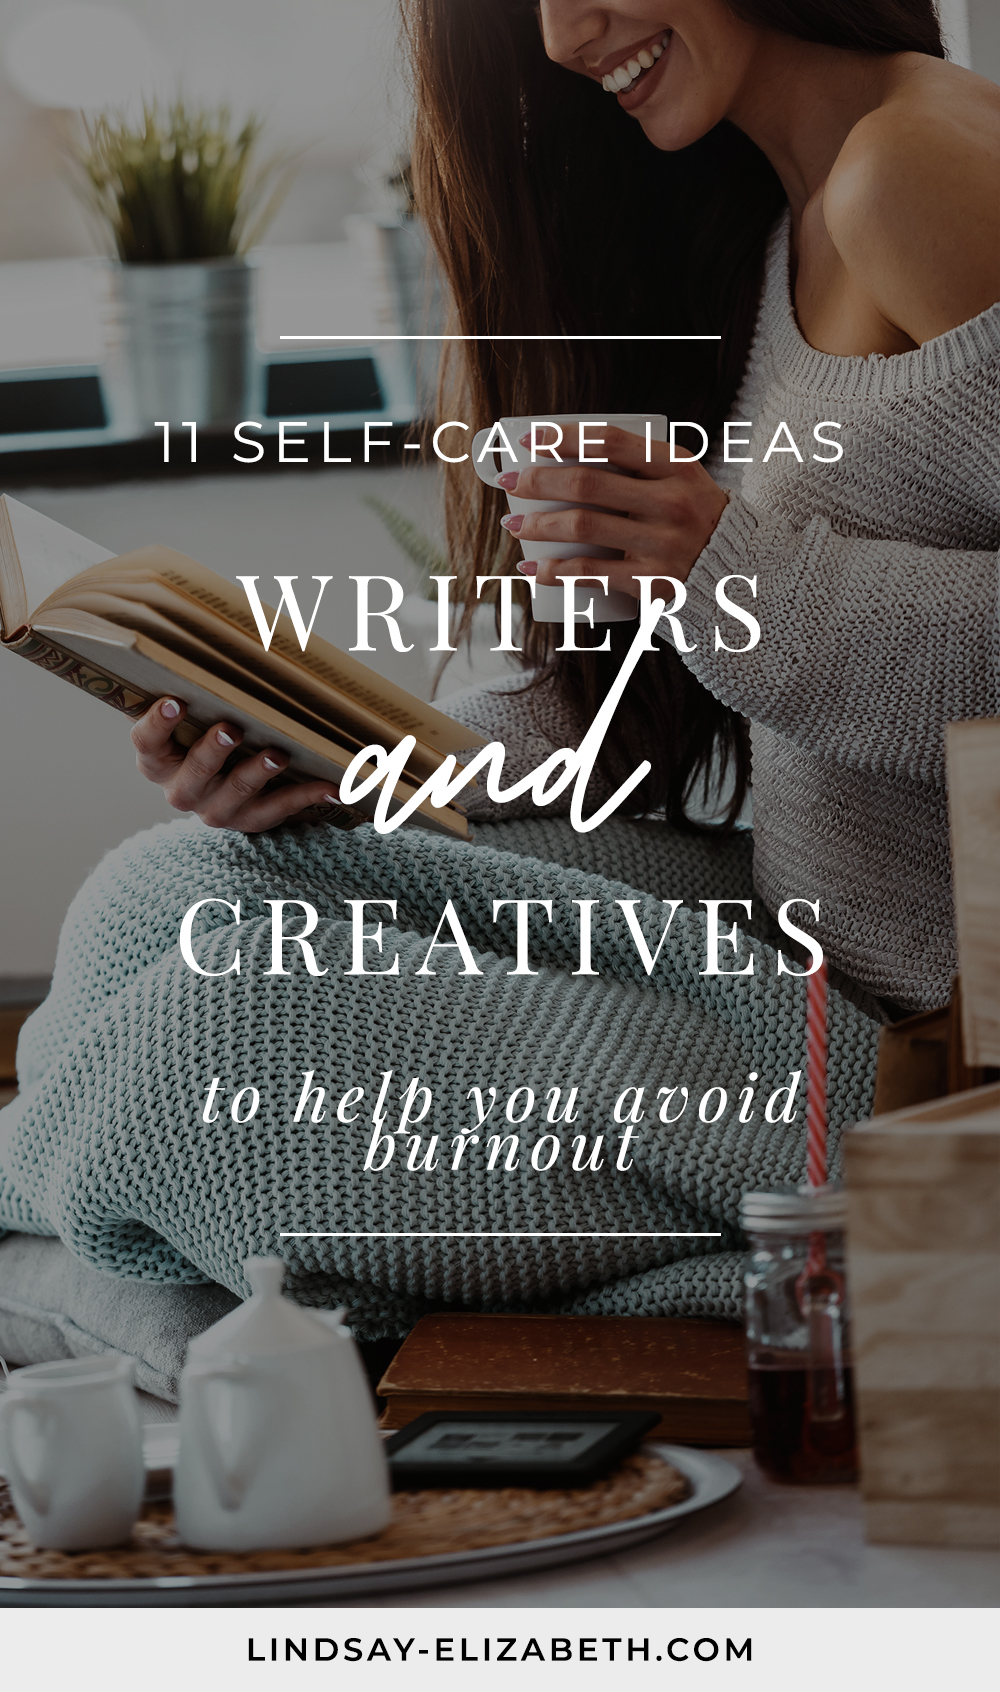 As writers and creatives, our passion lies in the process of creating things. But just because it's something we love to do doesn't mean that it can't drain us. You can still run into creative burnout! Here are some self-care ideas for writers and creatives that will help you stay grounded and keep your cup full. #writers #authors #selfcare #writingadvice #writingtips